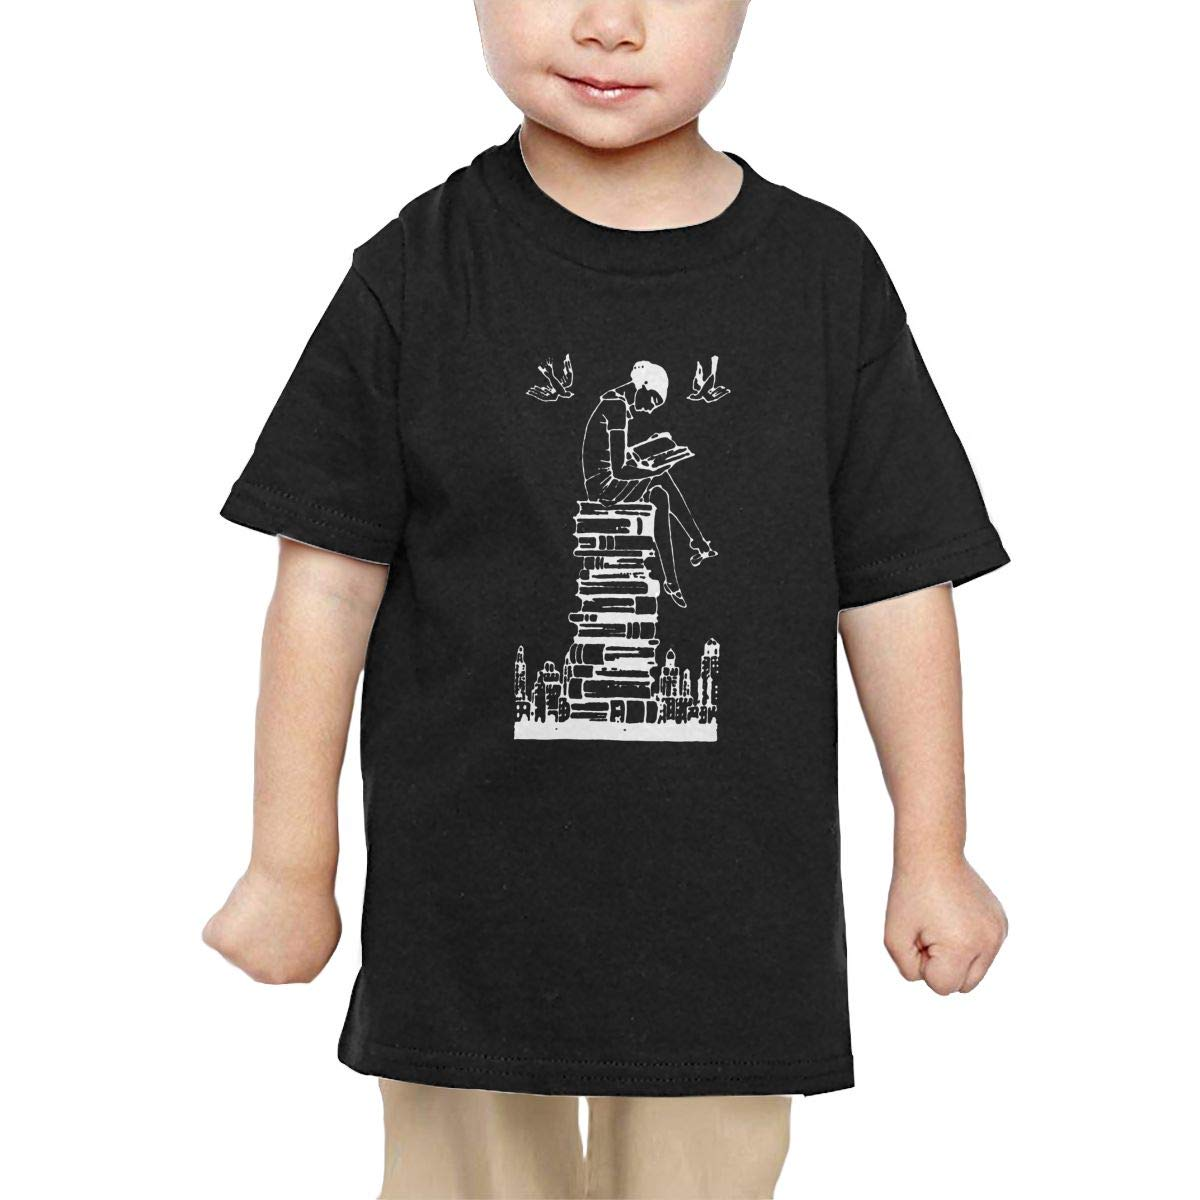 Chunmmmmm Reading Girl ATOP Books Baby Infant Short Sleeve Round Neck Cotton Tee